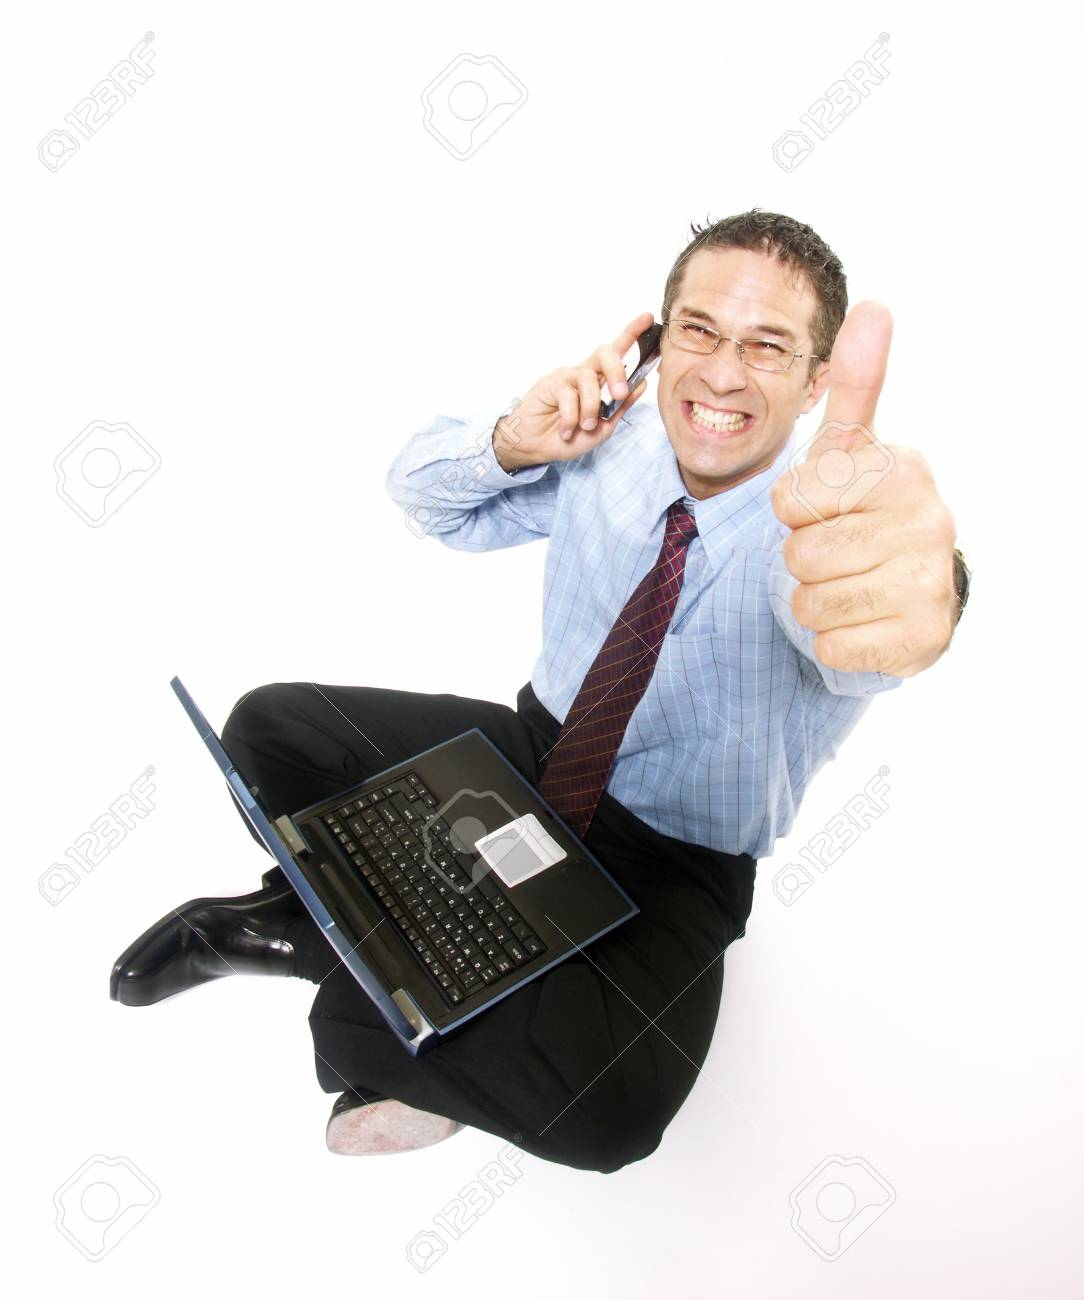 Young businessman sitting down with a laptop and a phone on white background Stock Photo - 22525870